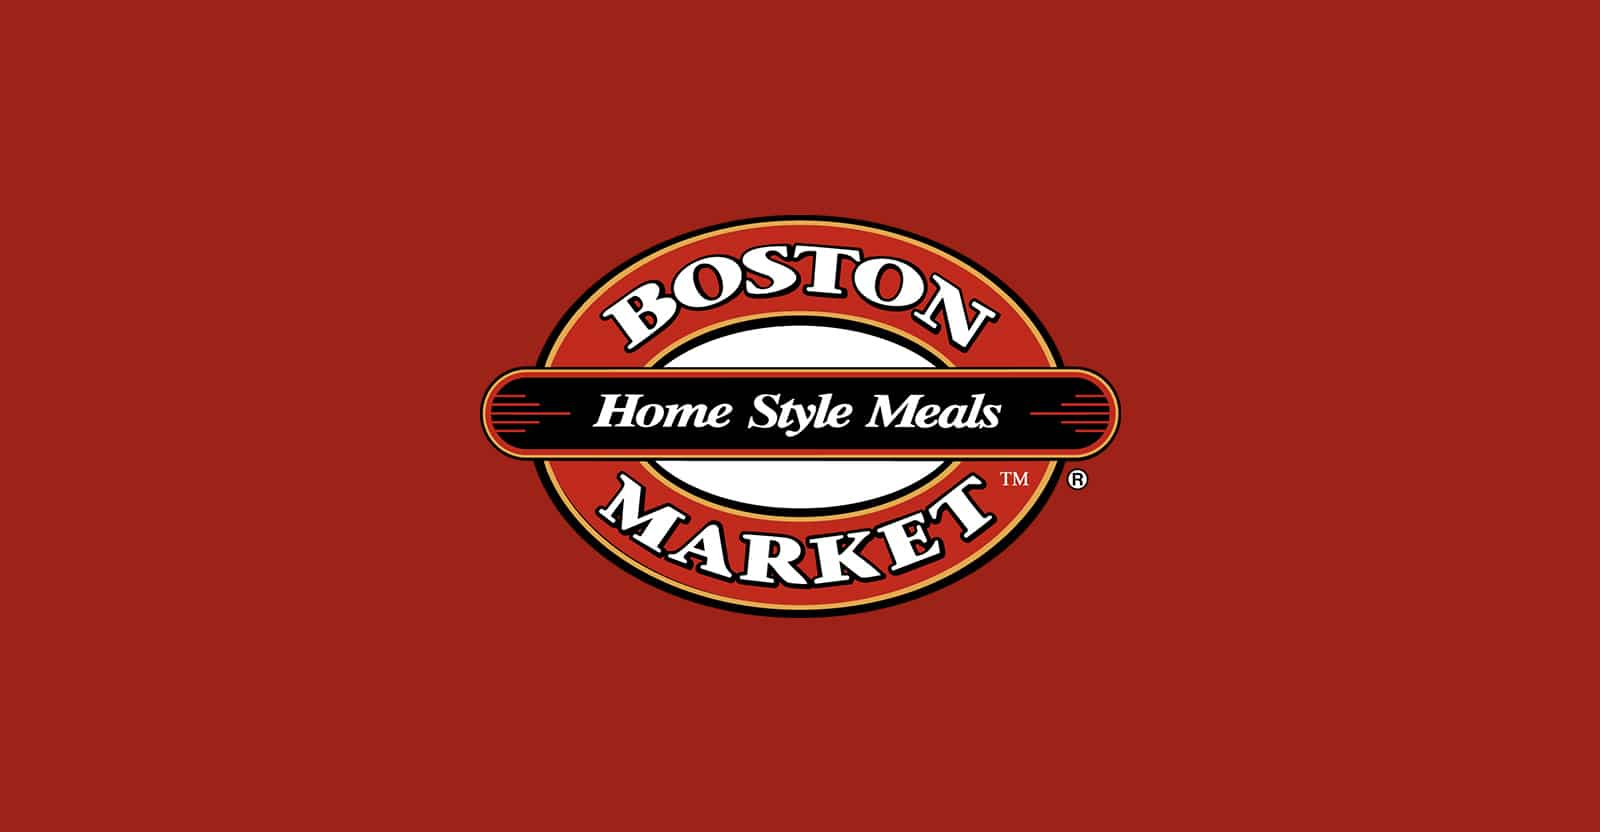 boston market gluten-free menu